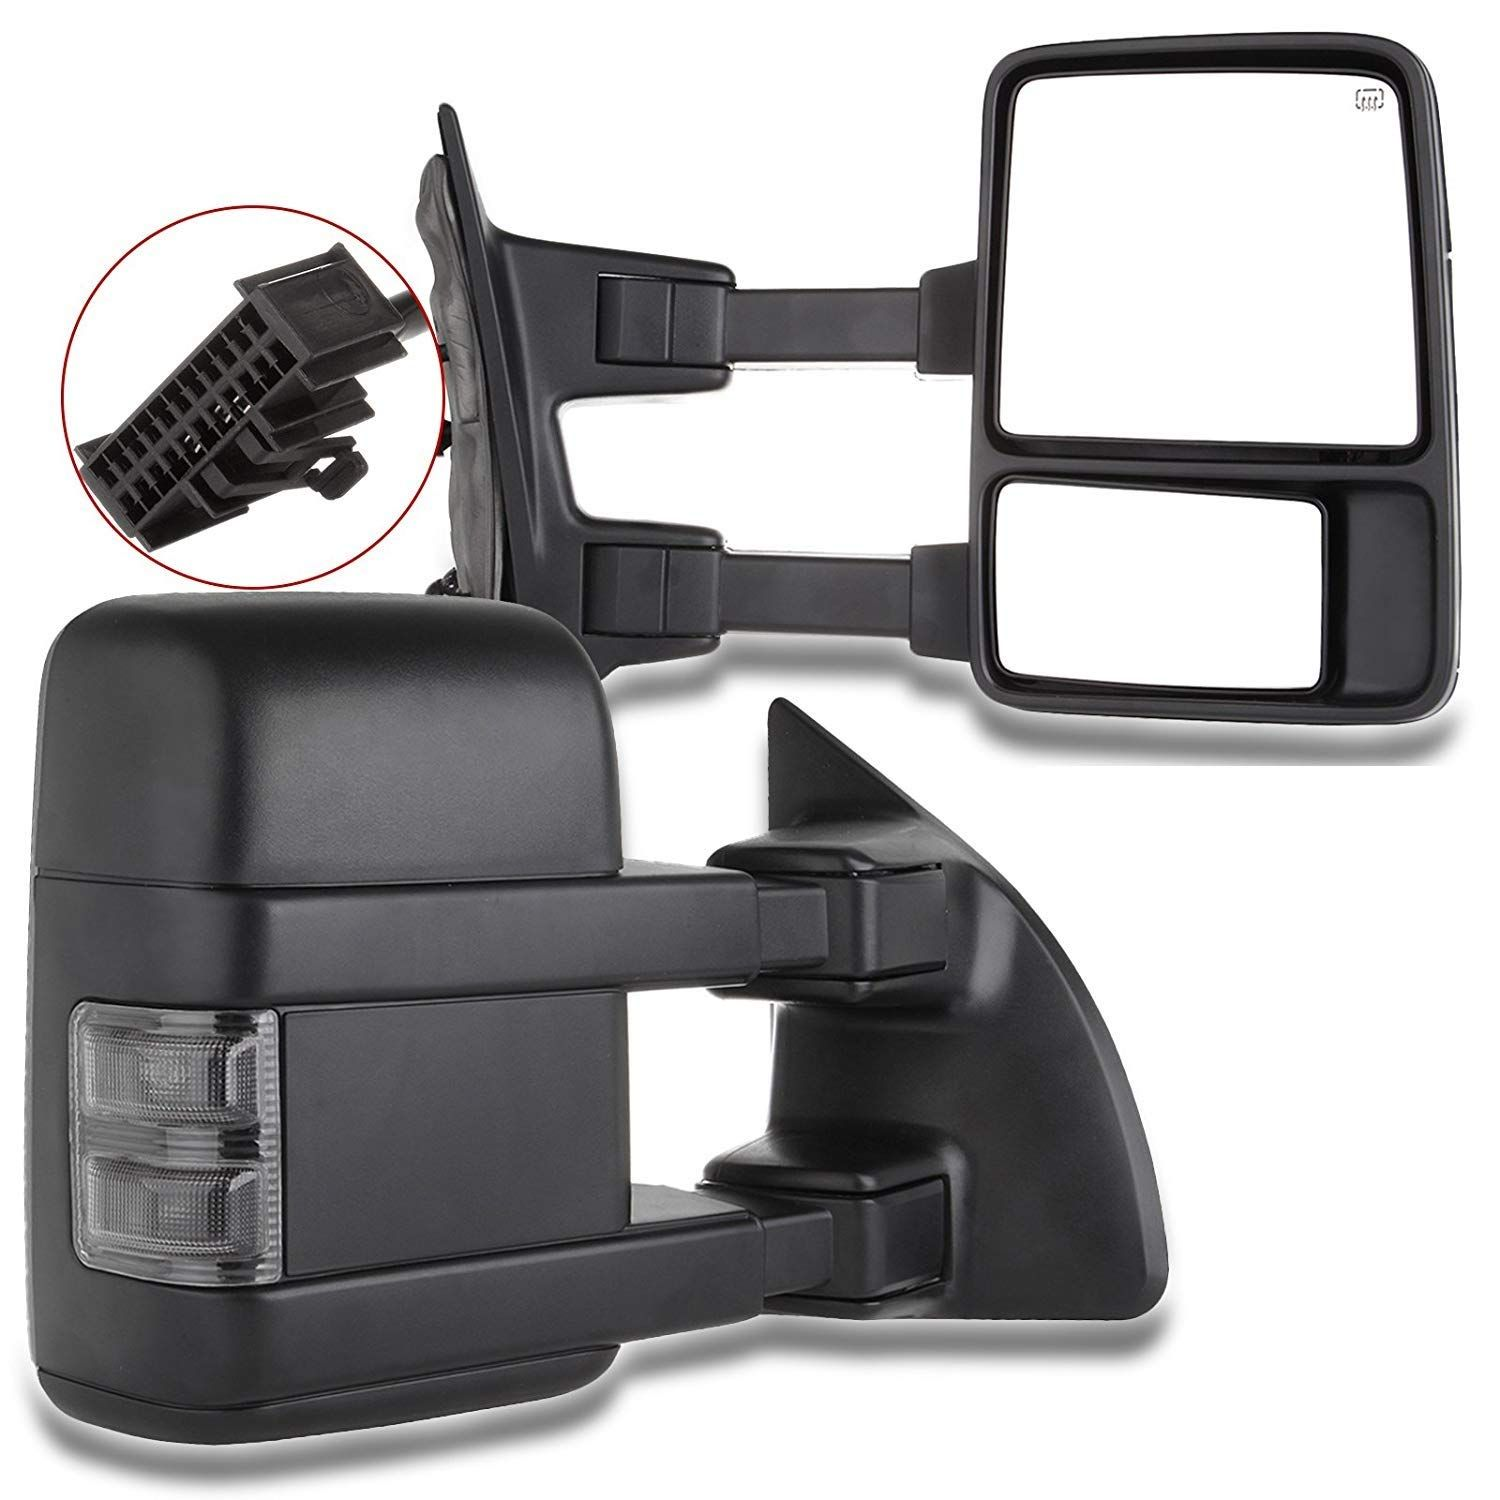 Scitoo Tow Mirrors Fit 1999 2016 Ford F250 F350 F450 F550 Super Duty Pickup Manual Led Smoke Signals Lamps View Mirror Pair Want Additi F250 F350 Ford F250